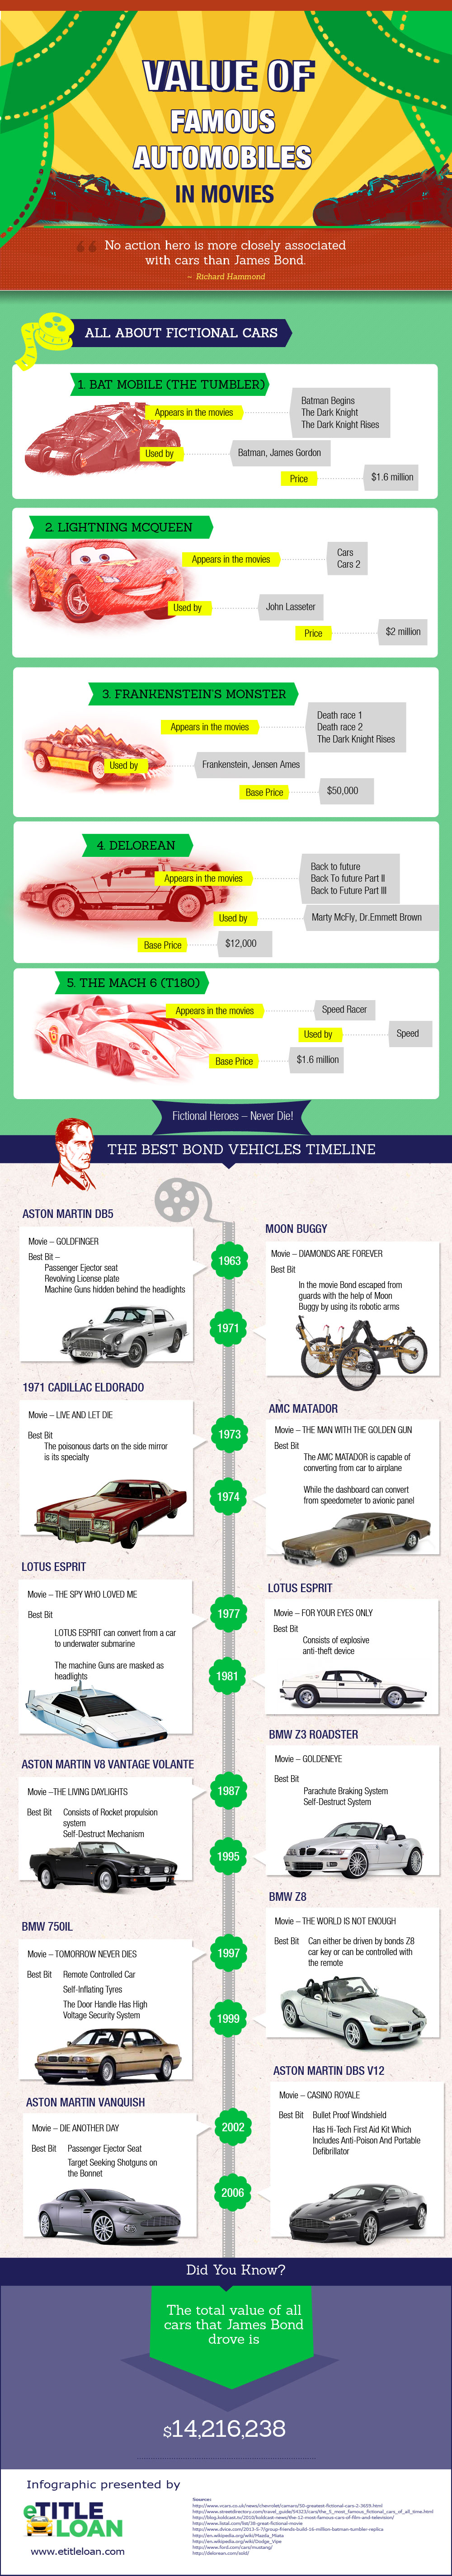 Value of Famous Automobiles in Movies